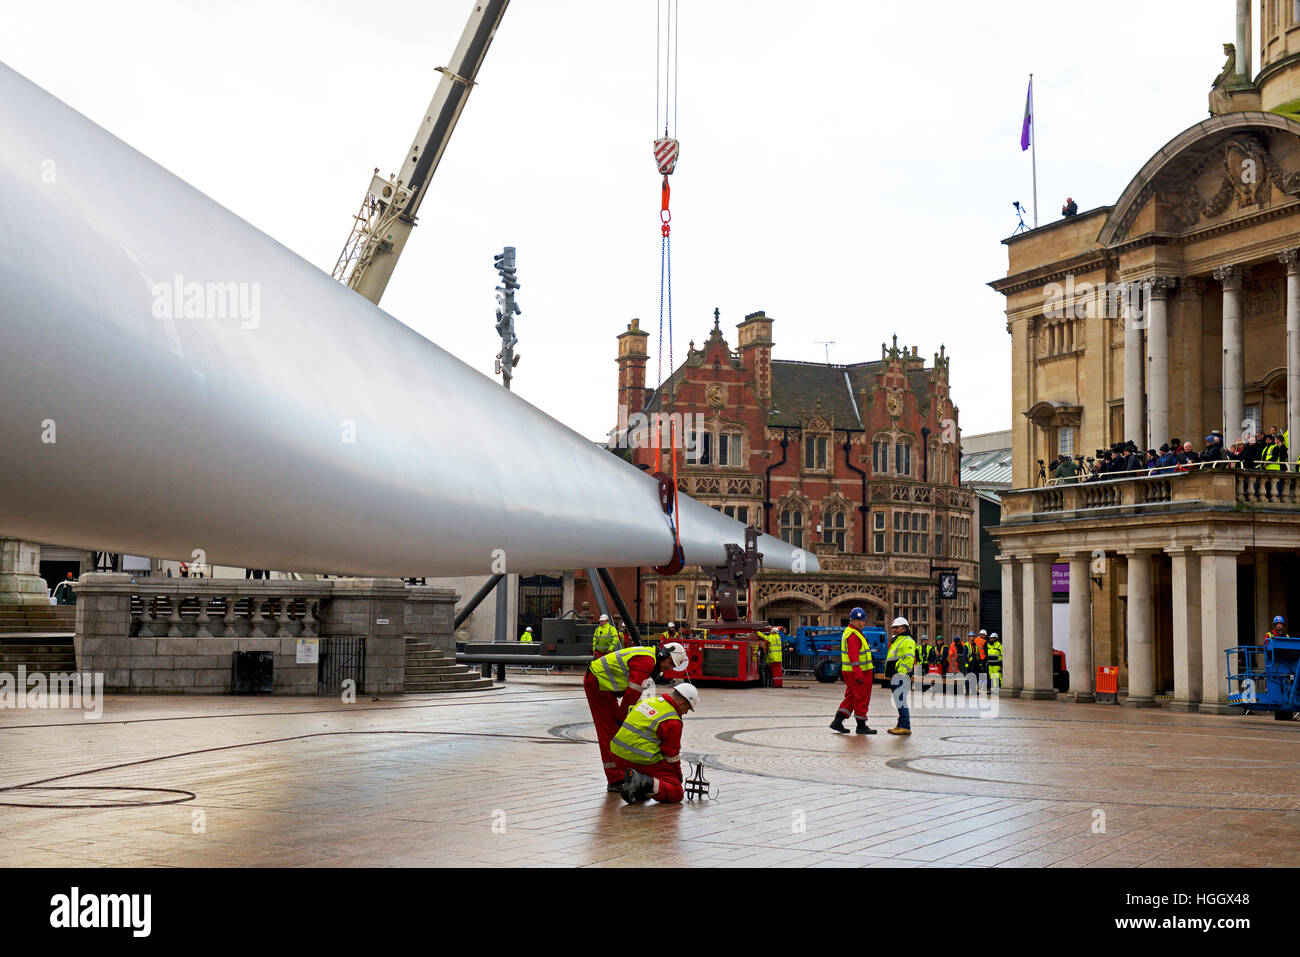 L'installation de lame d'éoliennes à Victoria Square, Kingston Upon Hull, East Riding of Yorkshire, Photo Stock